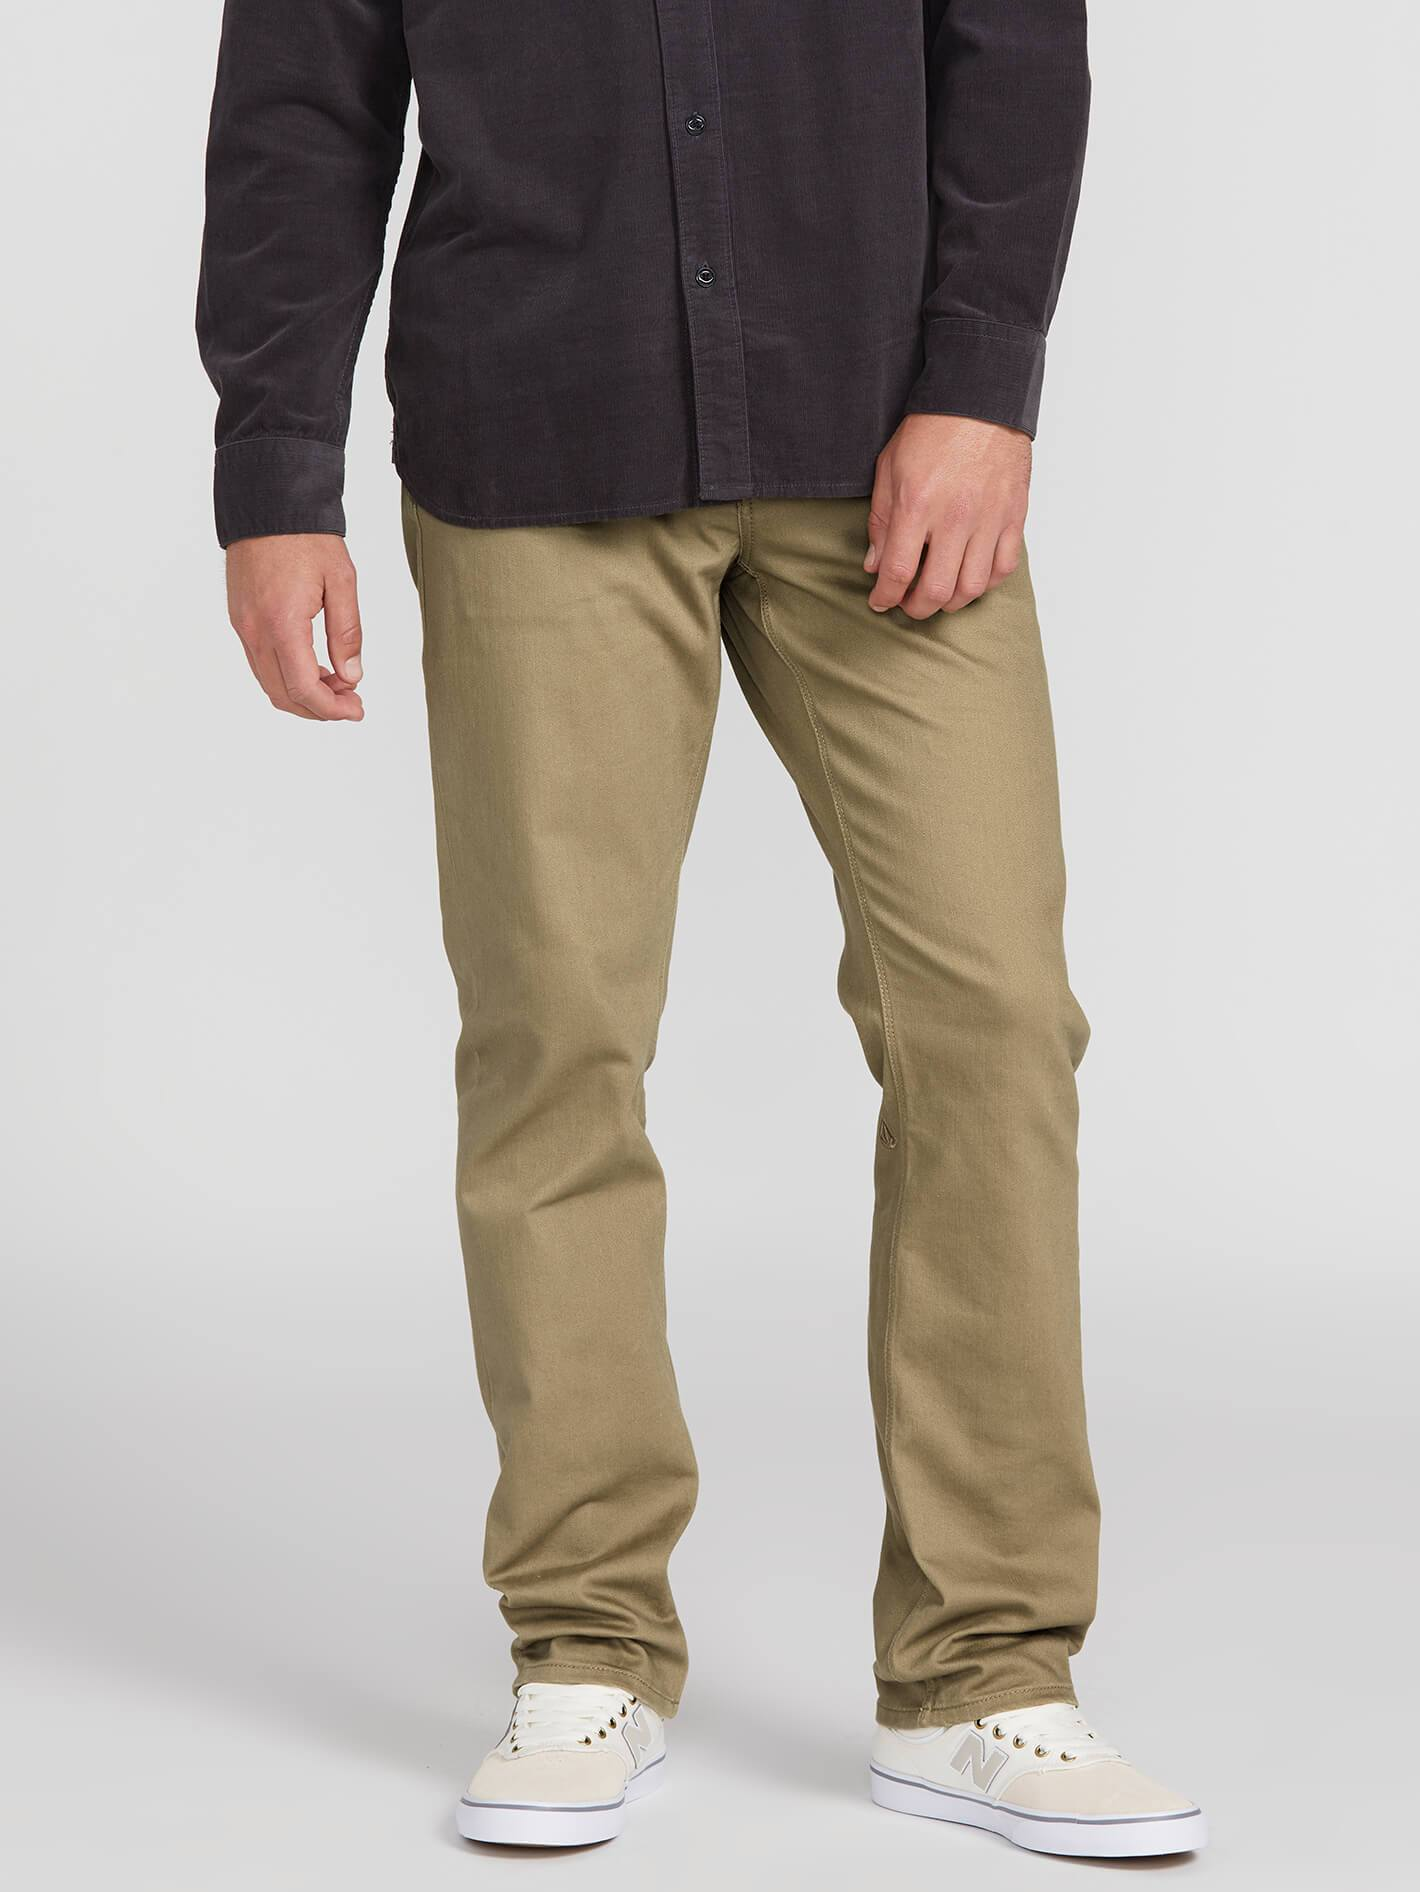 Volcom Solver 5 Pocket Slub Modern Fit Jeans - 88 Gear